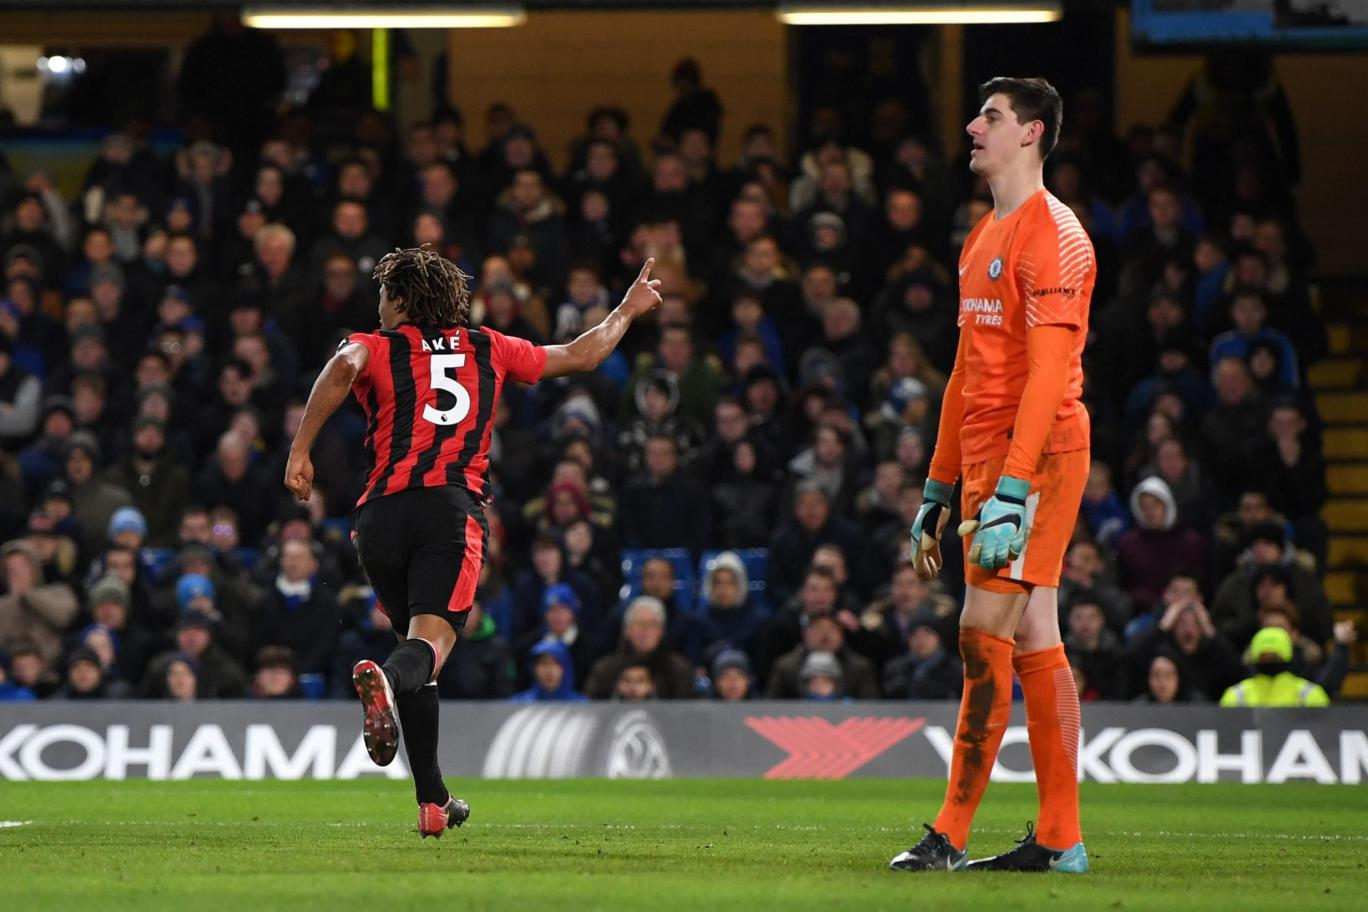 Junior Stanislas scored a fine solo goal as Bournemouth fought gallantly with an entertaining 3-1 victory over Everton at Goodison Park on Sunday. But, in spite of the win, their five-year stay in the English Premier League (EPL) has come to an end. The visitors needed three points to have a chance of survival and […]